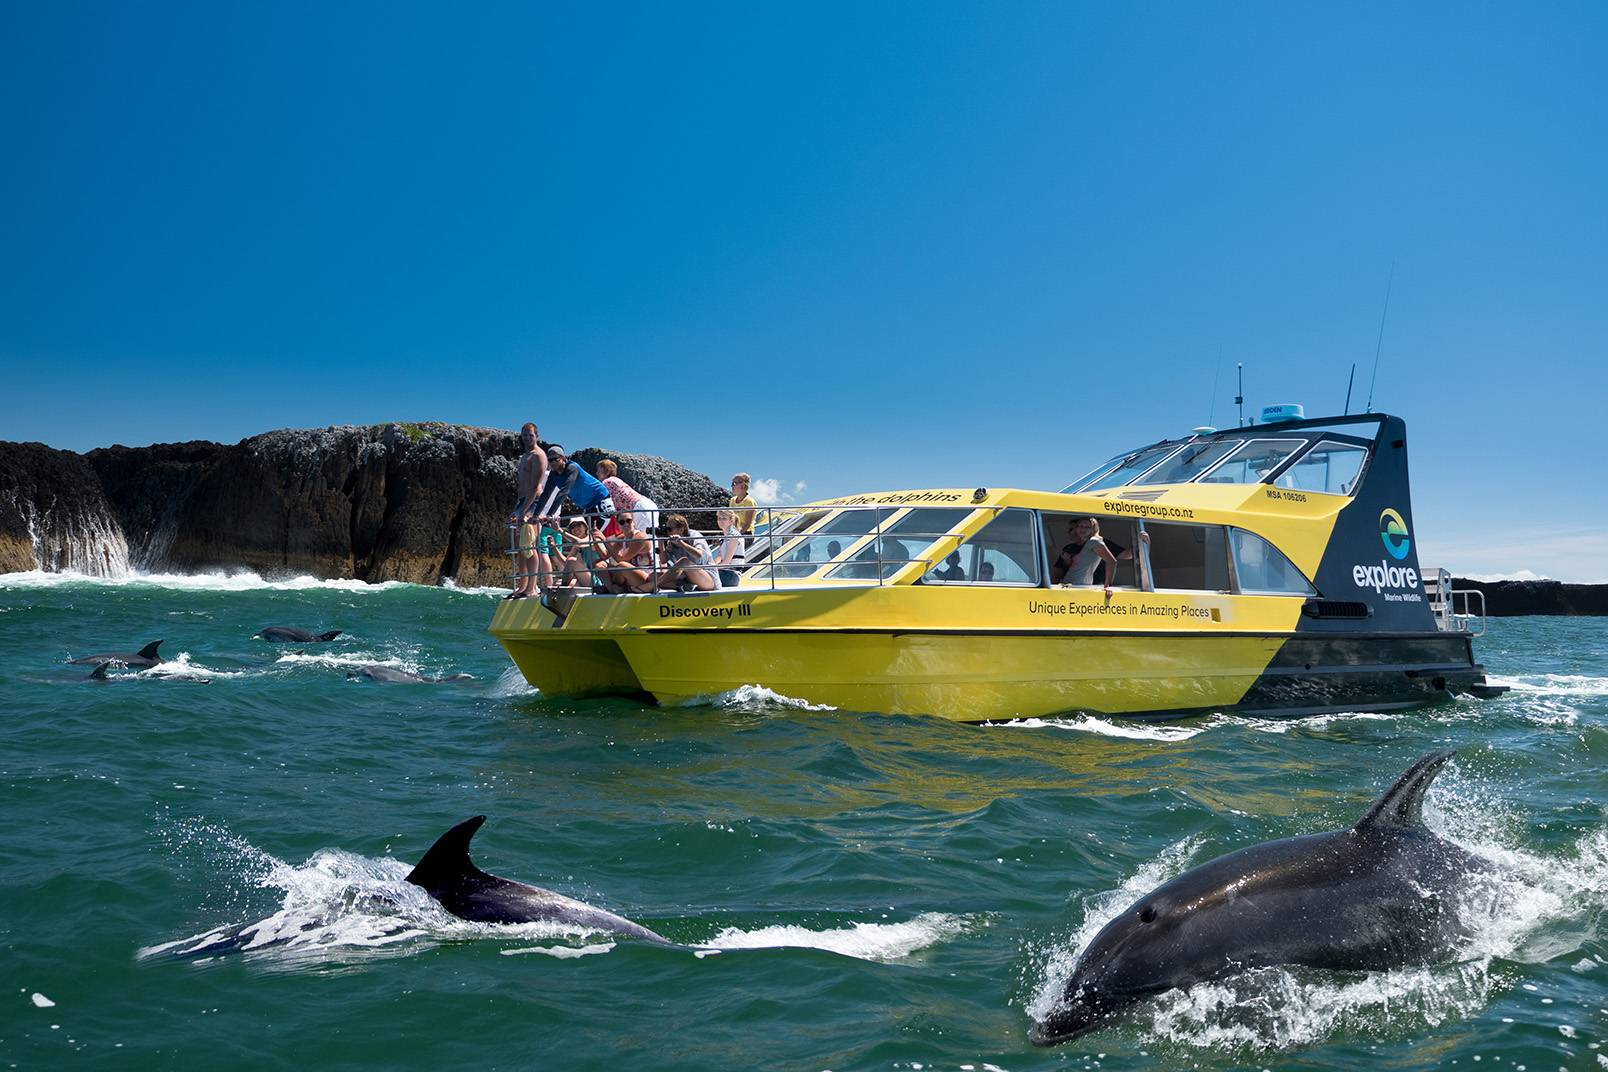 4-Hour Bay of Islands Discover the Bay Cruise